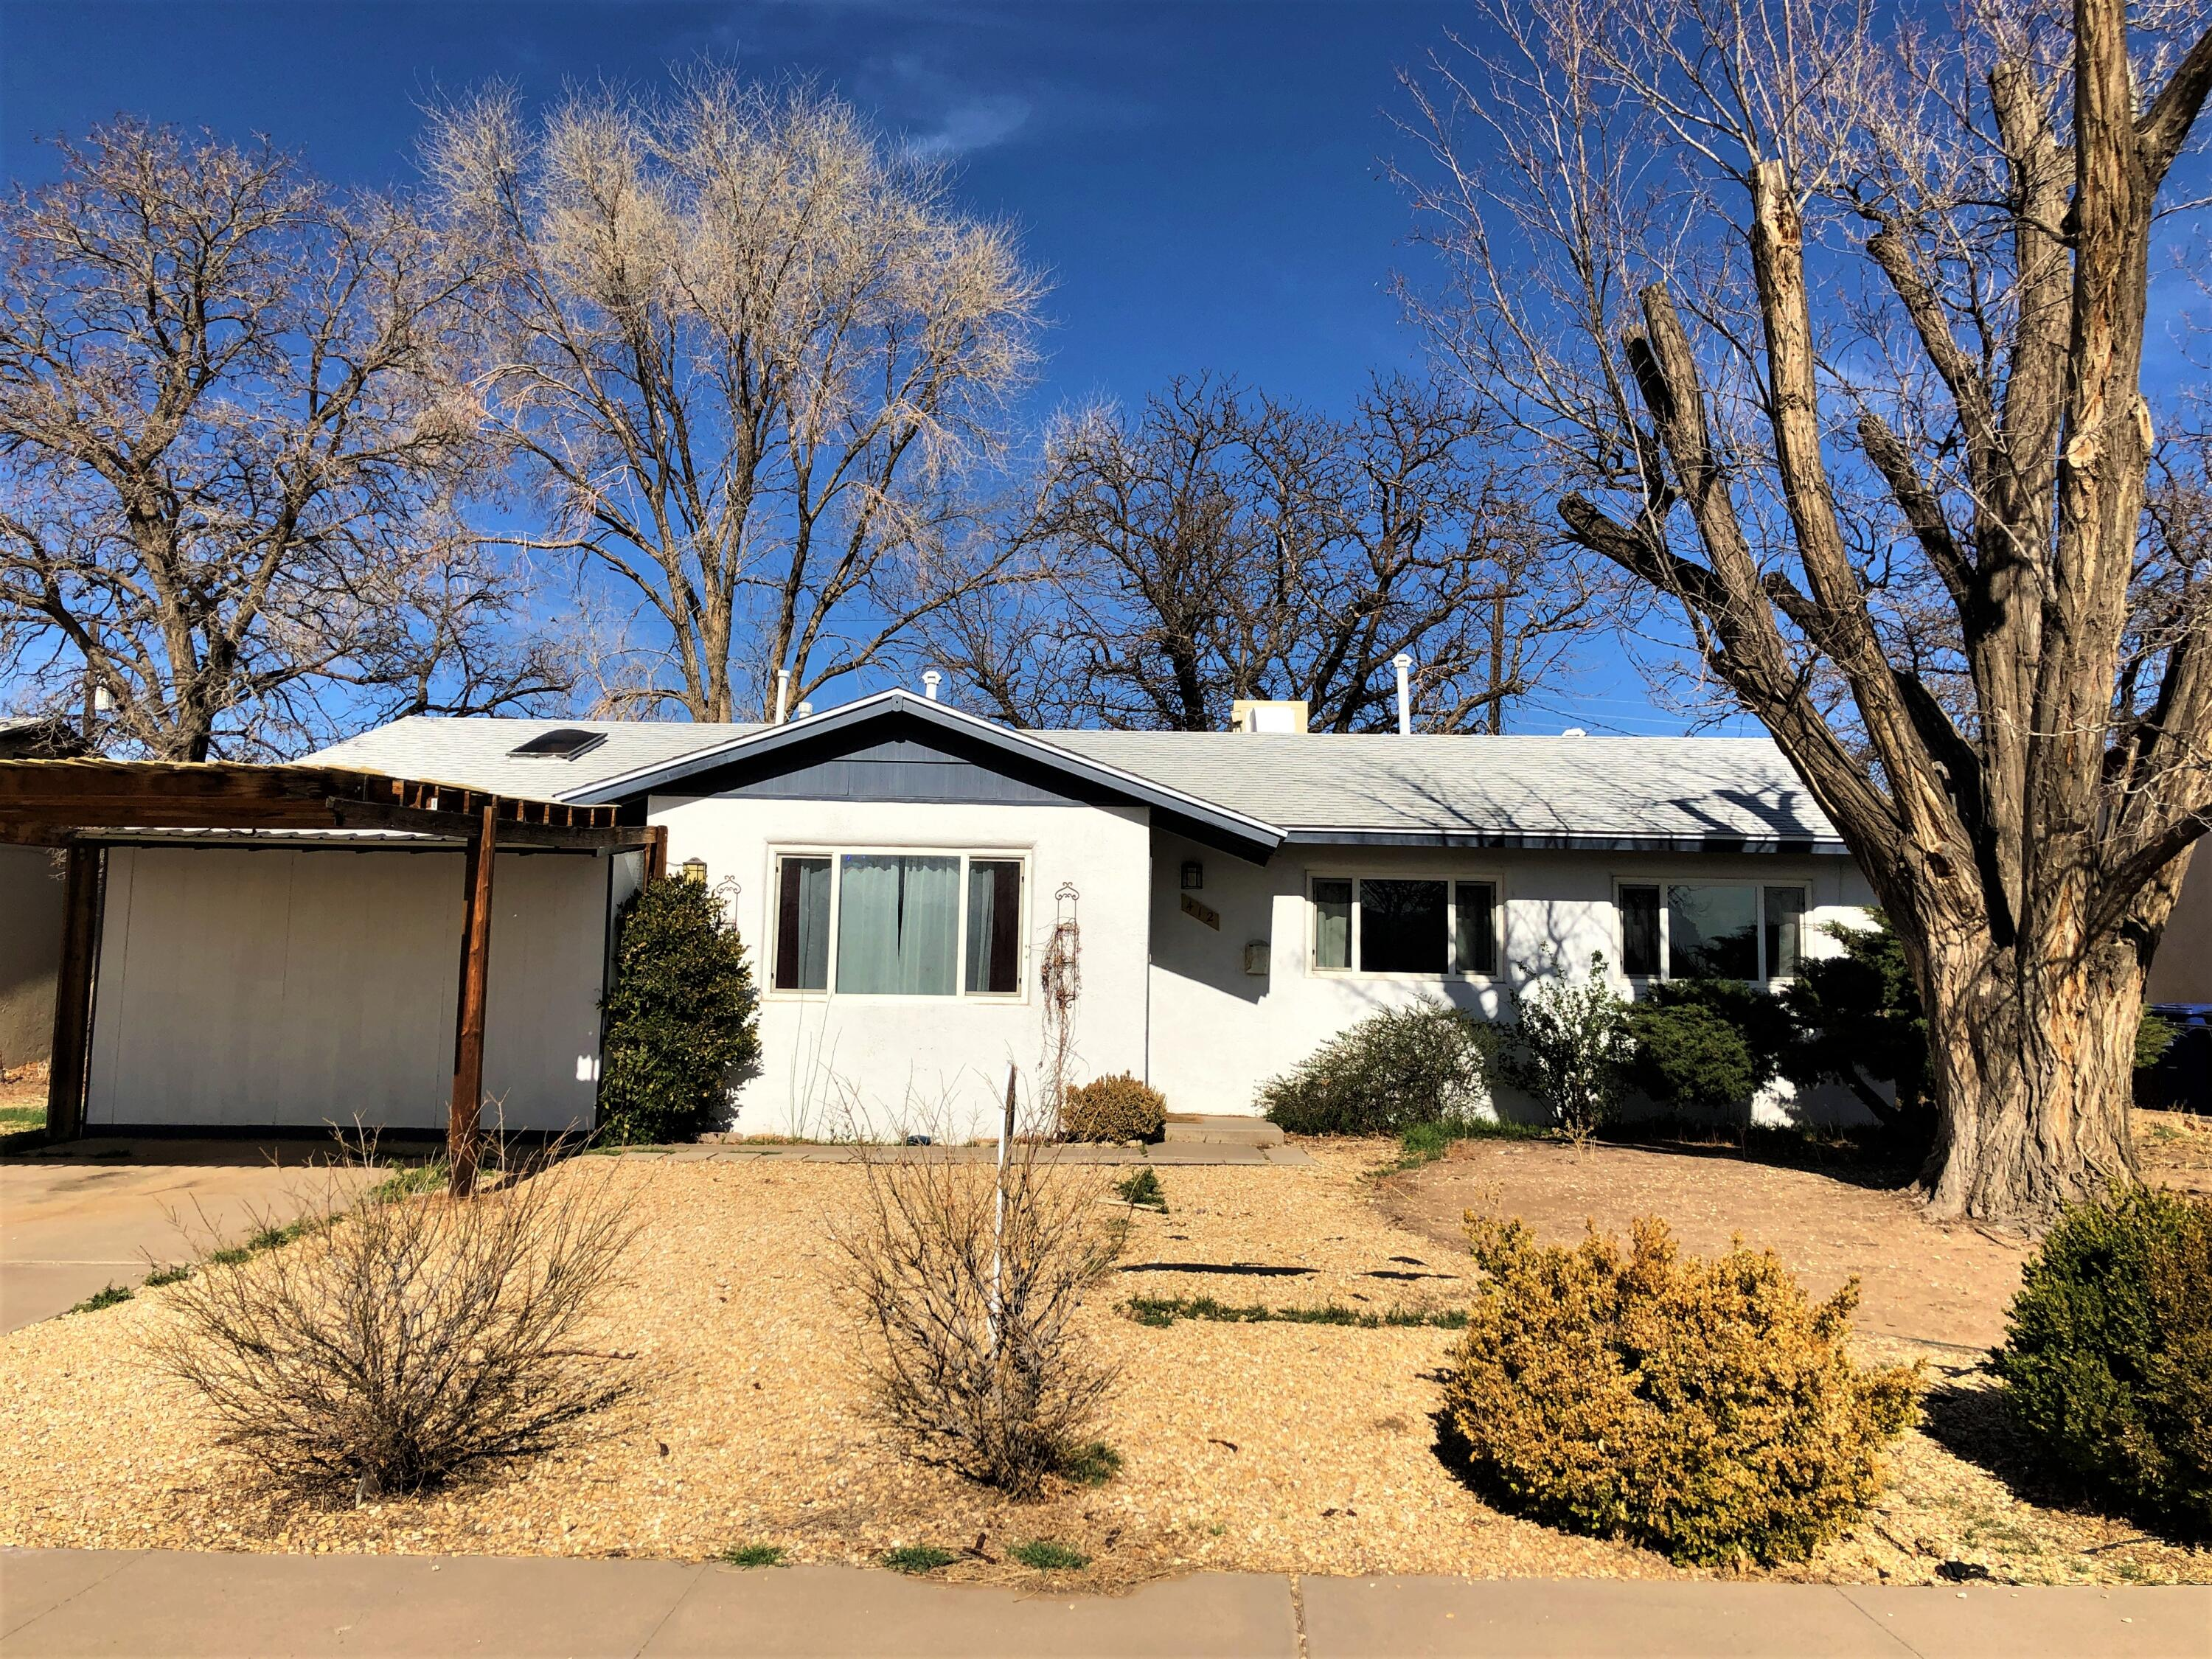 Charming Three bedroom, Full Bath plus a Half Bath.  Updated bathroom and kitchen. All appliances stay.  Garage has been converted to expand the living area. With an extra large storage closet.  Huge backyard.  A great place to call Home!